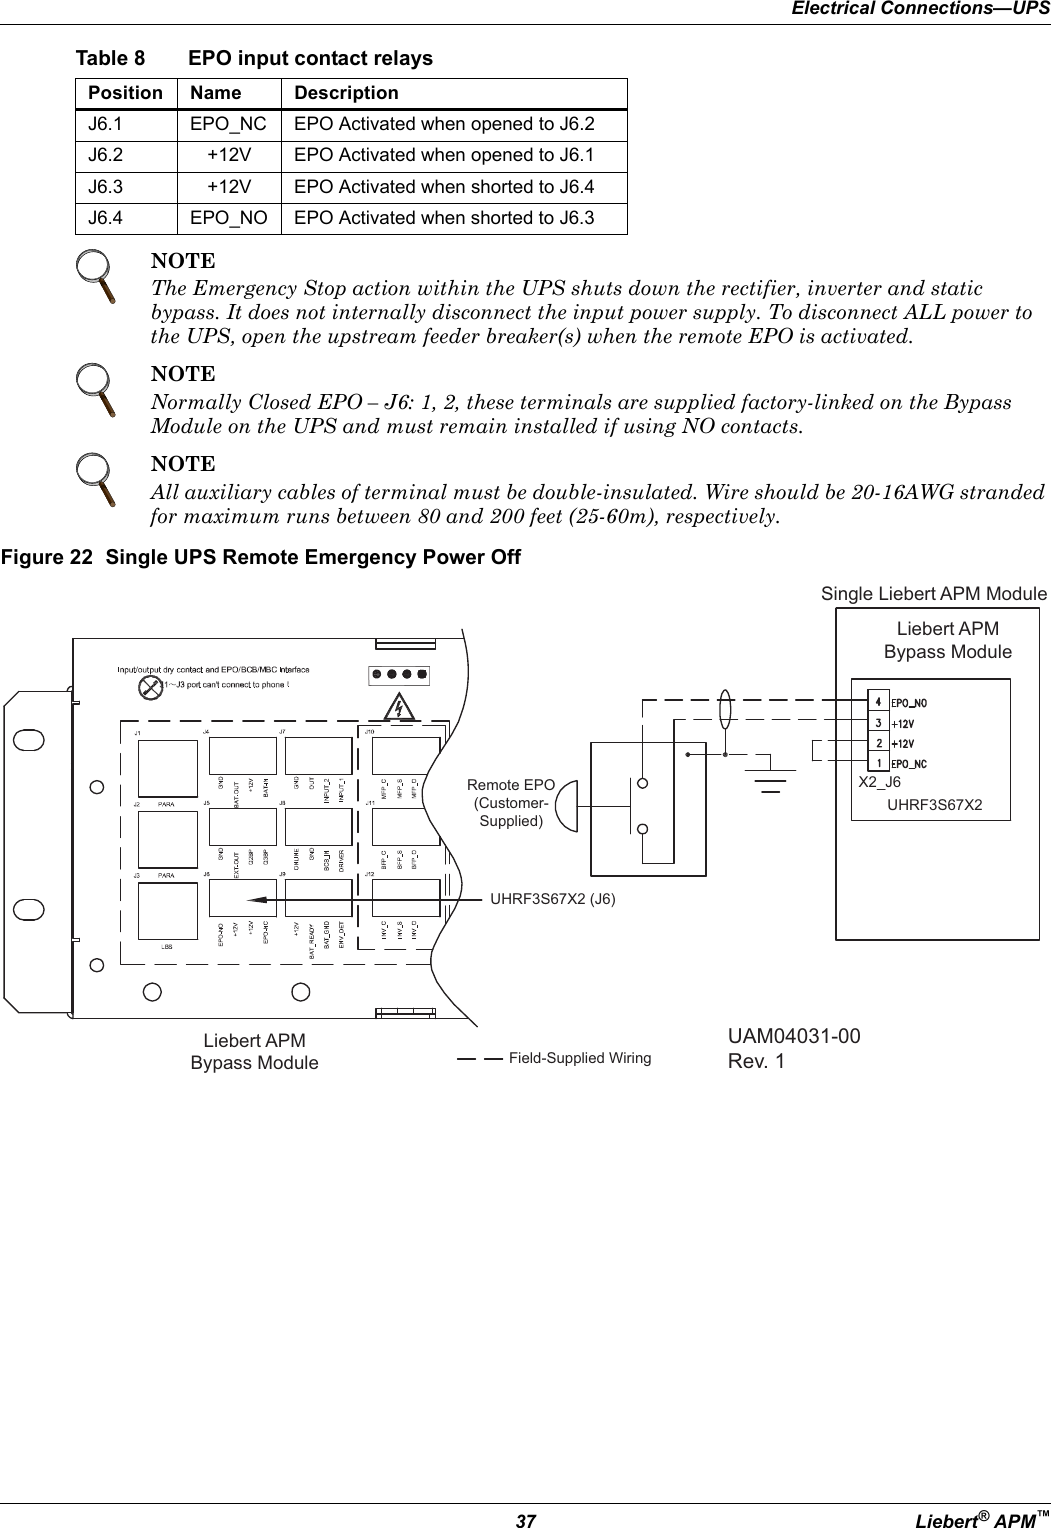 Emerson Liebert Apm On Line Ups 15 90Kw User Guide on diode diagram, troubleshooting diagram, service diagram, steel diagram, power supply diagram, speaker driver diagram, field lights diagram, field wire, field guide norfolk, installation diagram, junction box diagram, control diagram, port diagram, lighting diagram, field maintenance, manufacturing diagram, assembly diagram, battery diagram, relative humidity diagram, field tools,